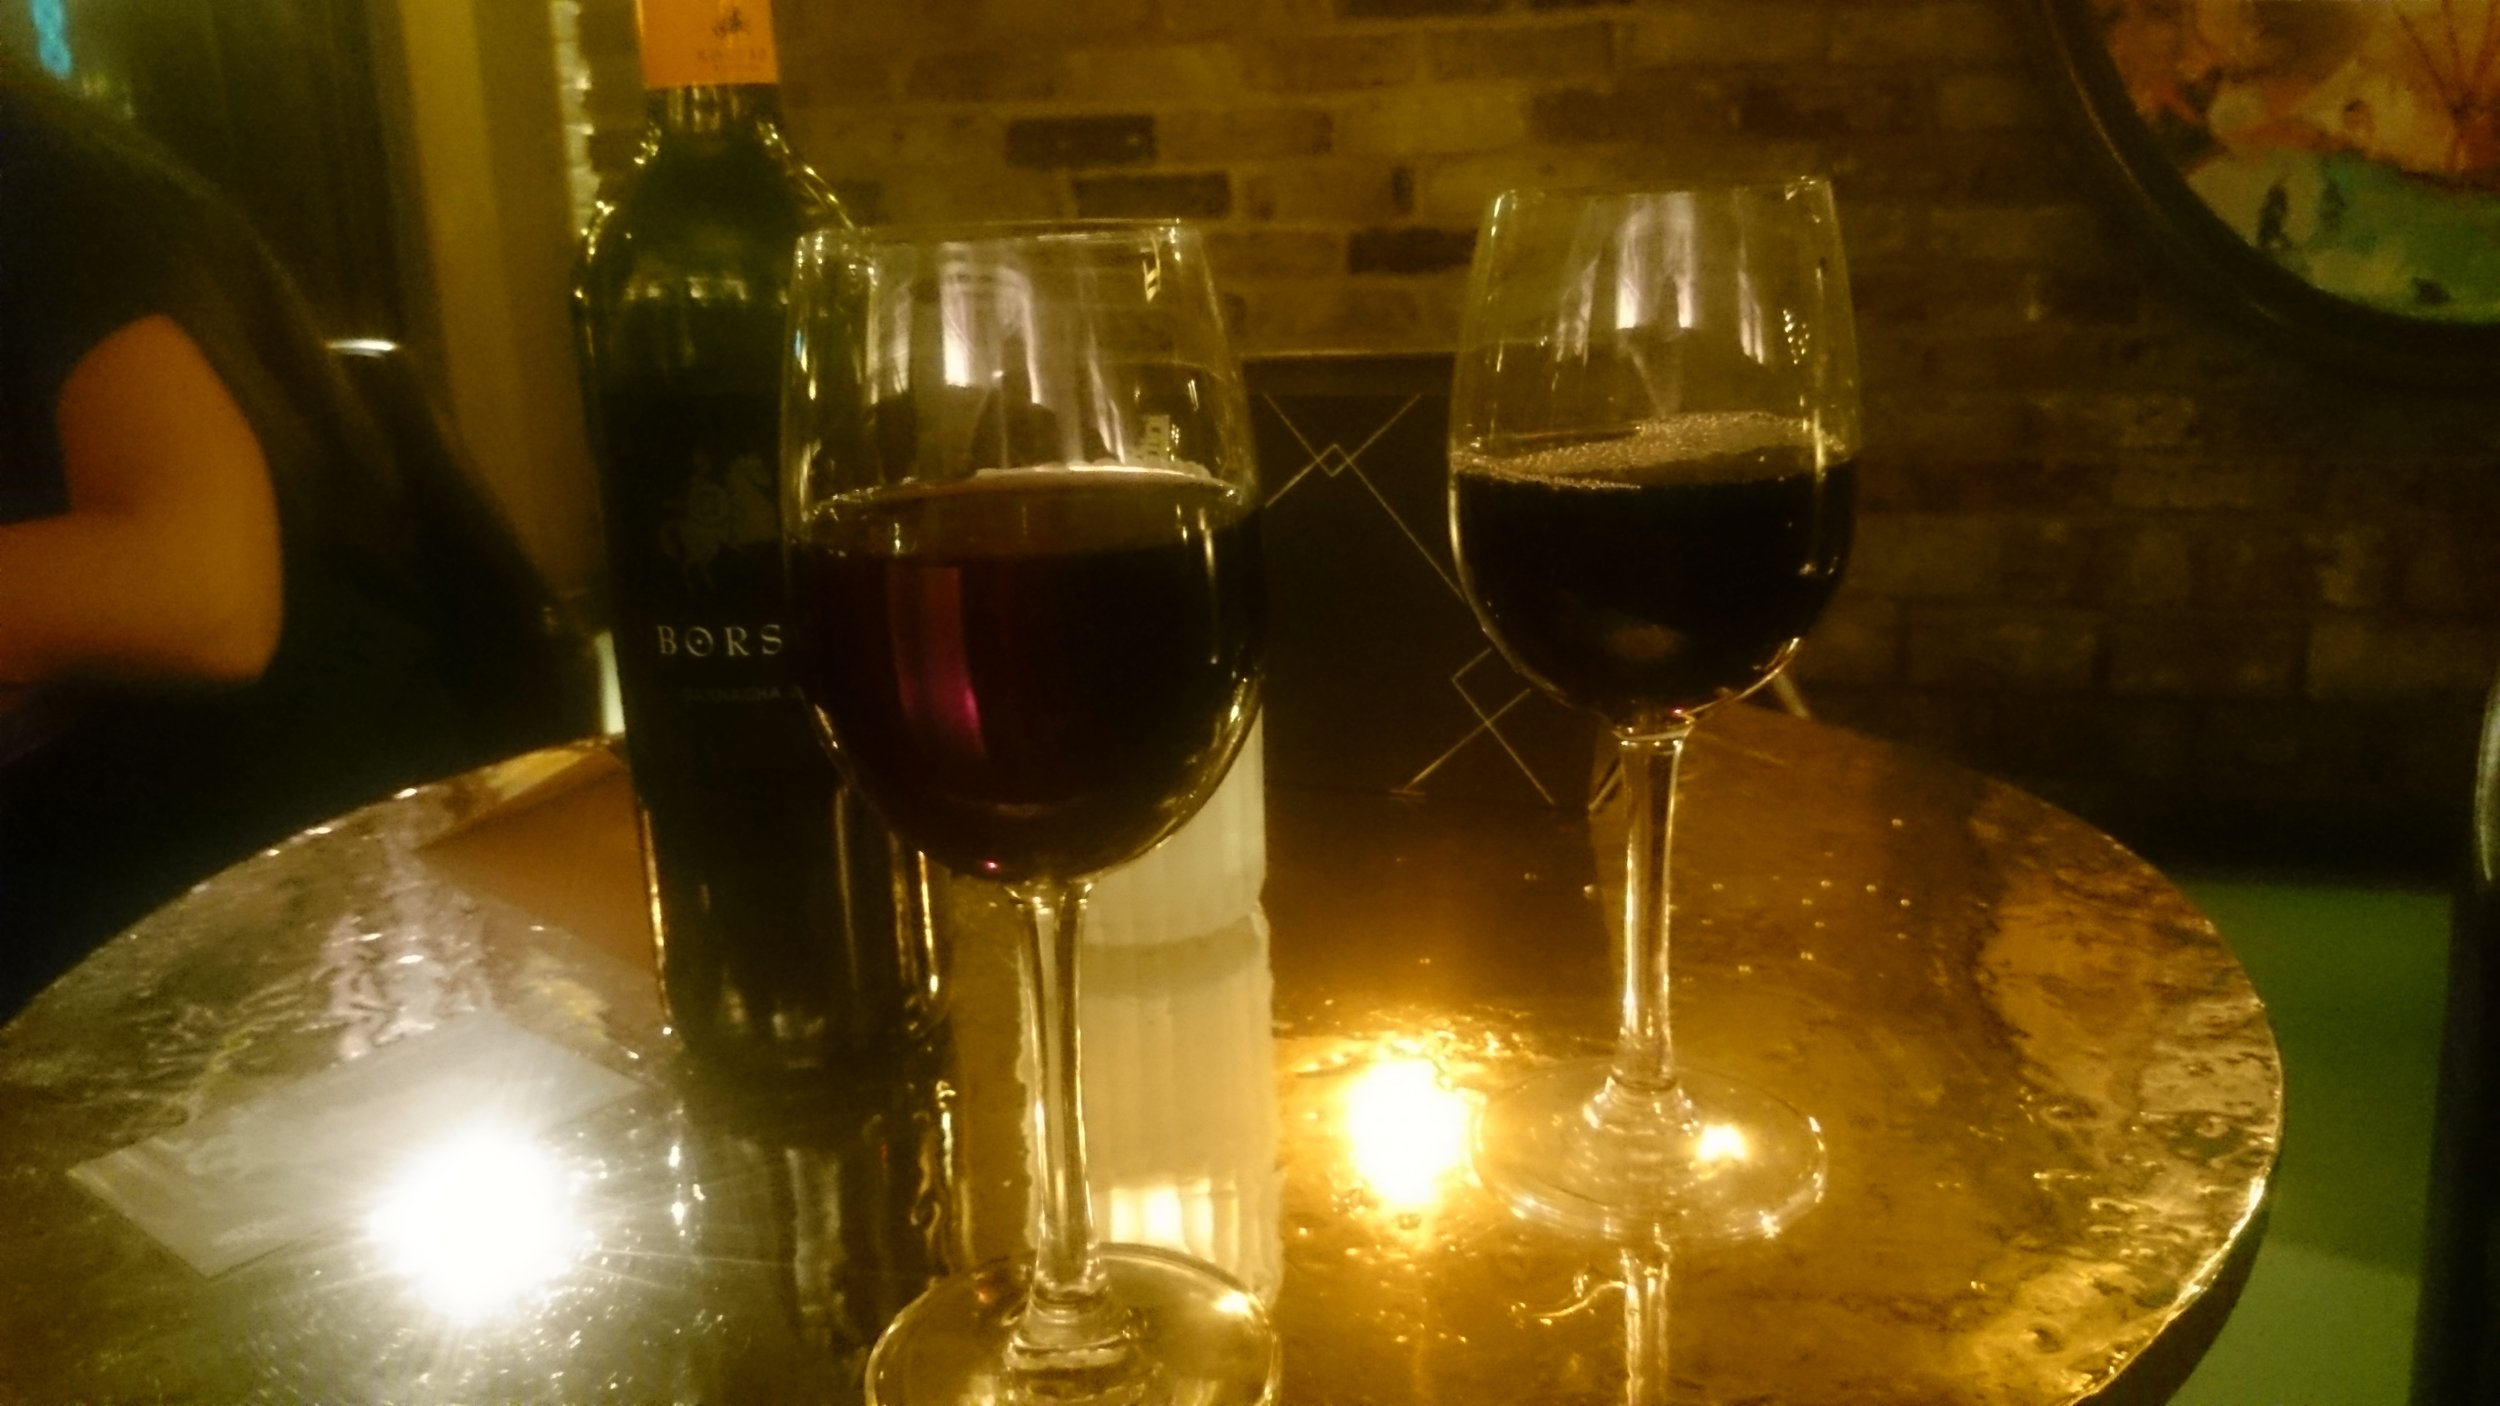 There was someone else there - I didn't order two glasses of wine at the same time. OR DID I!?